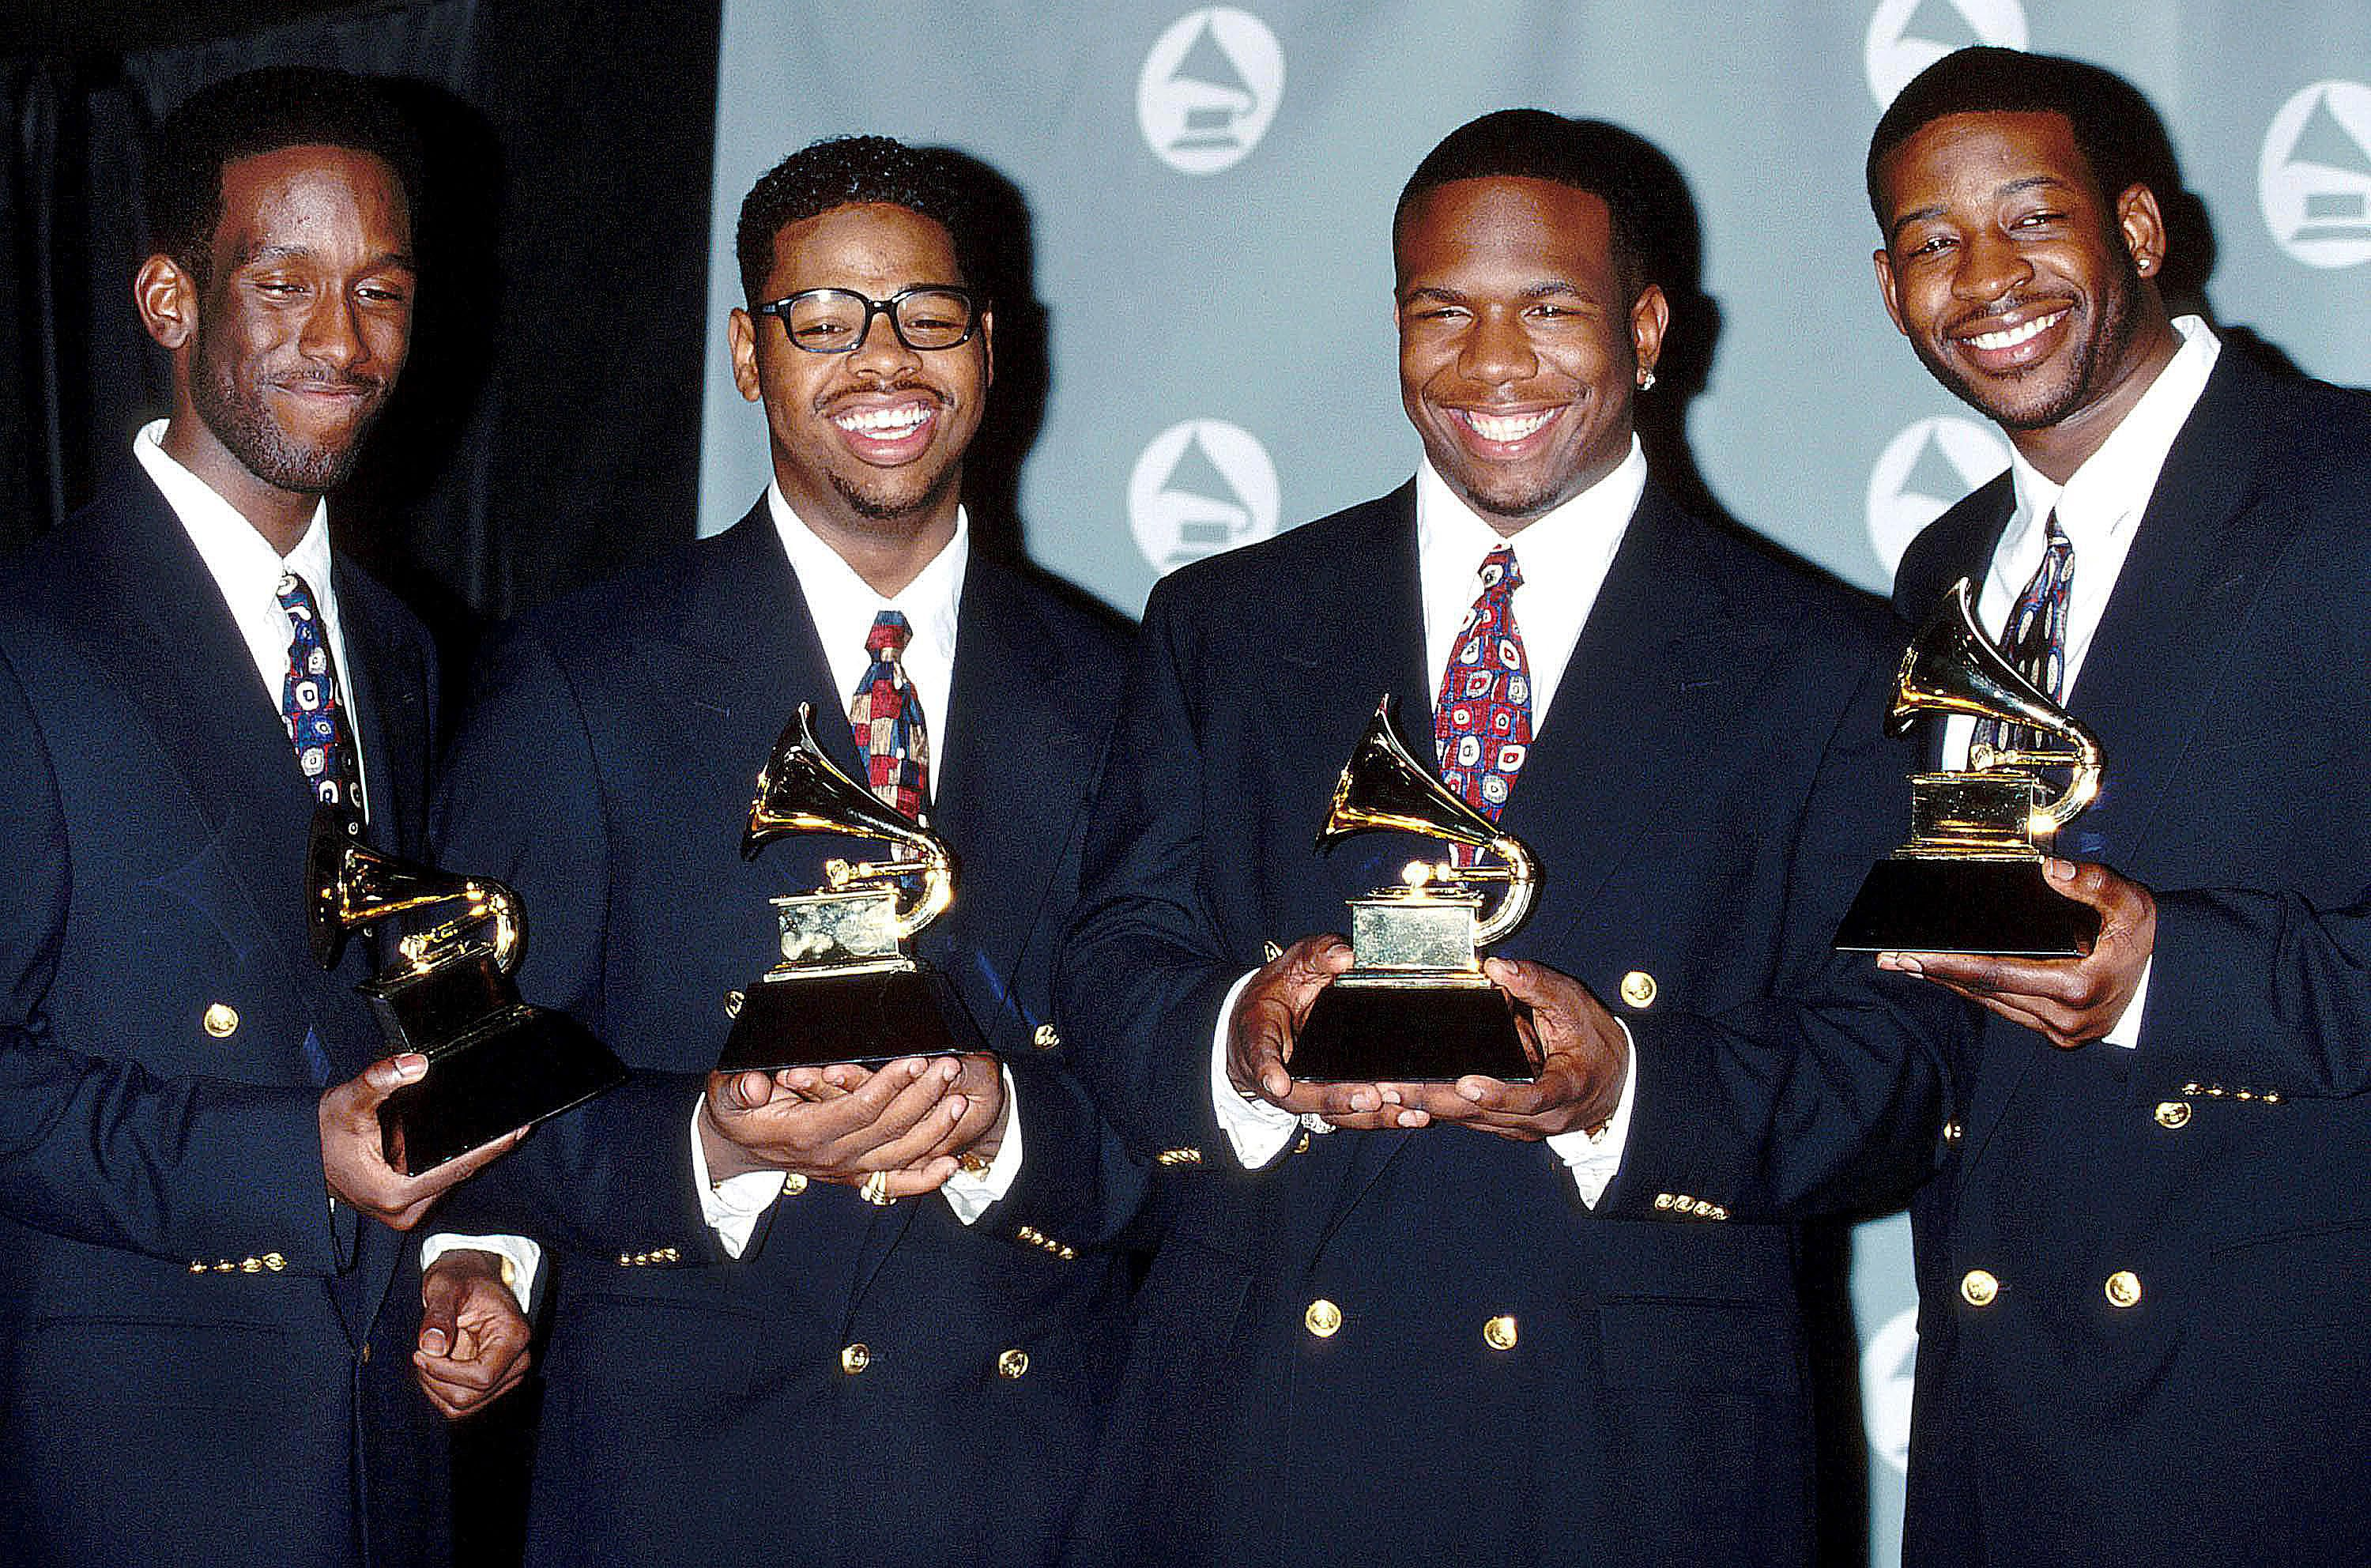 Boyz II Men at the 35th annual Grammy Awards on February 24, 1993 at the Shrine Auditorium in Los Angeles, California.